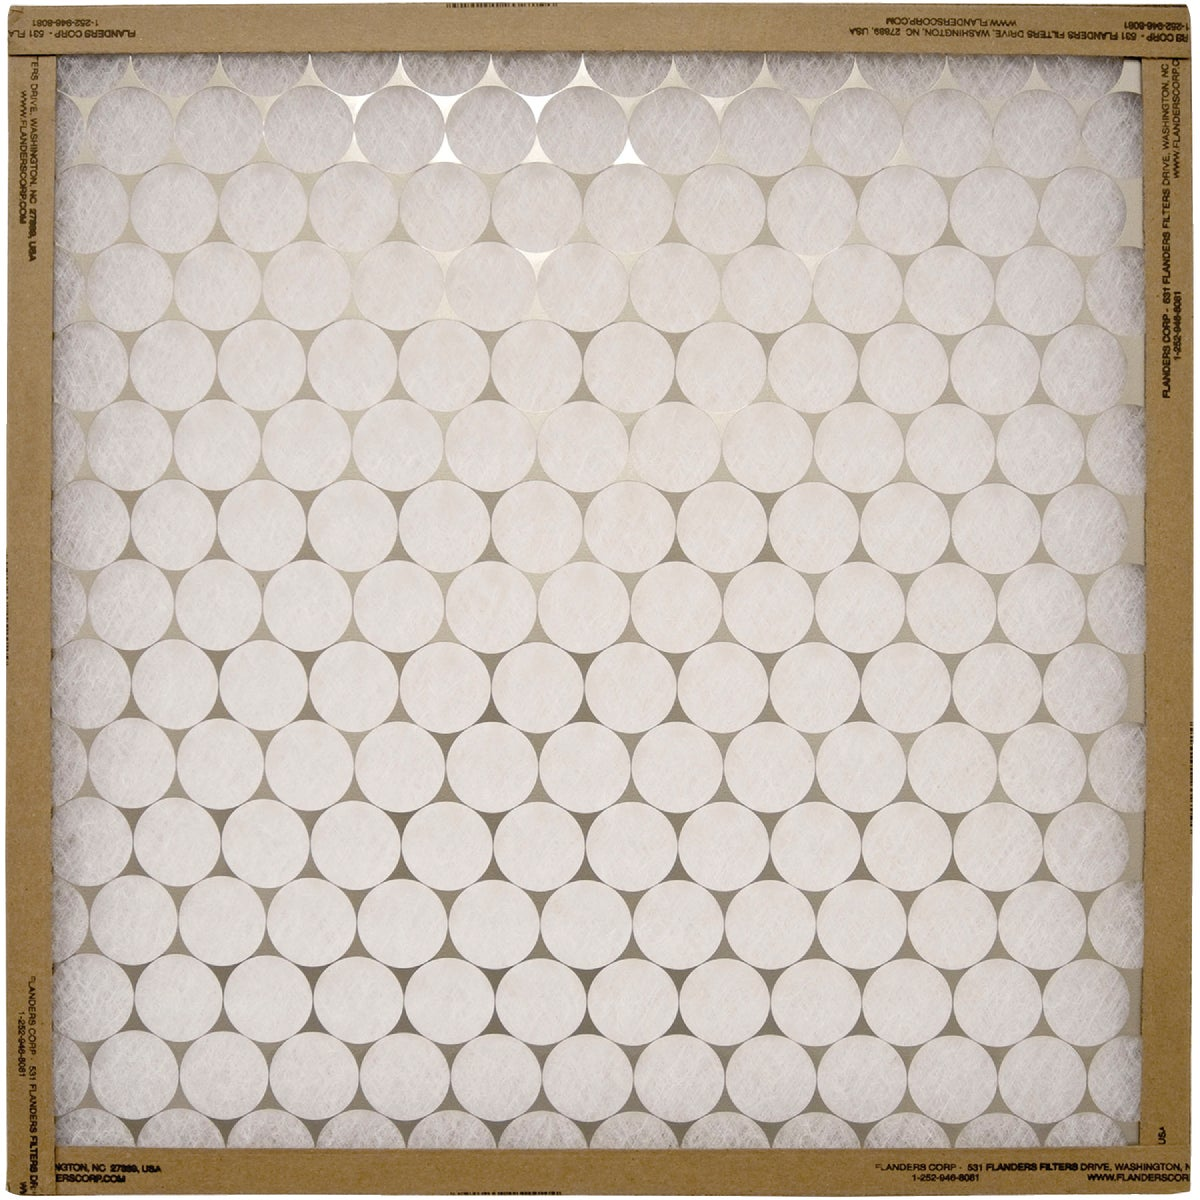 18X24 FURNACE FILTER - 10255.011824 by Flanders Corp